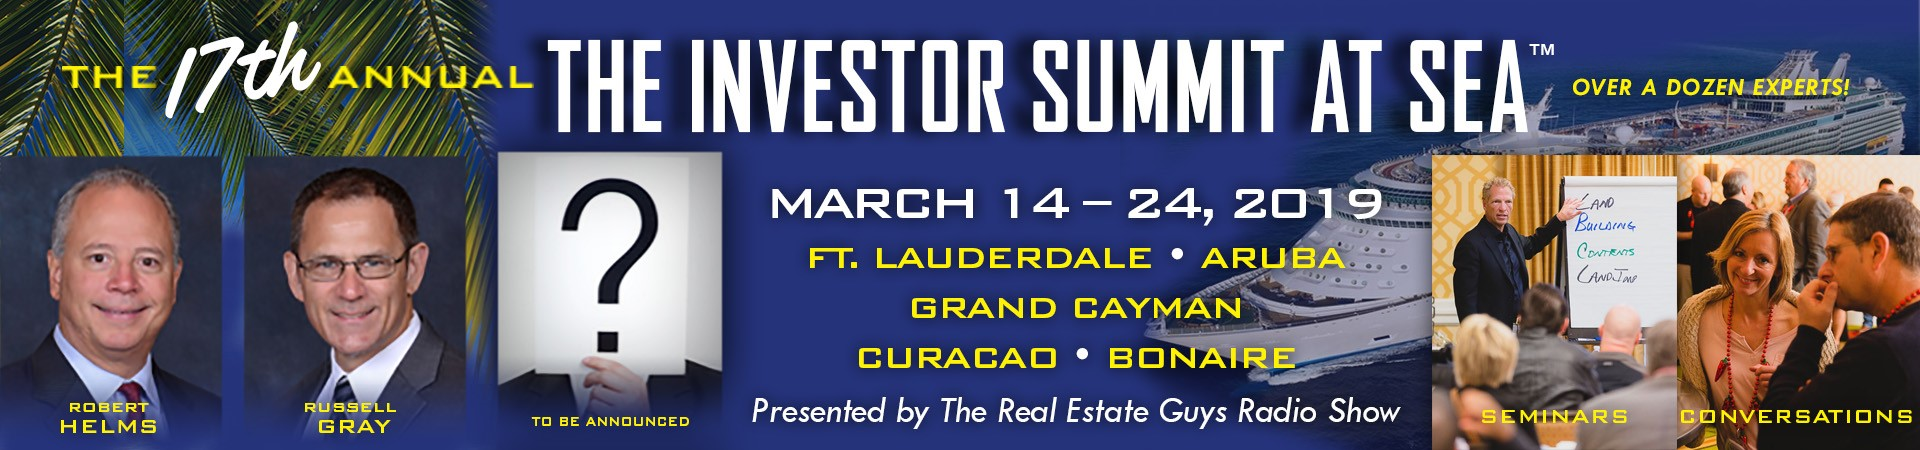 Rich Dad Poor Dad author Robert Kiyosaki is invited back again for yet another Investor Summit at Sea